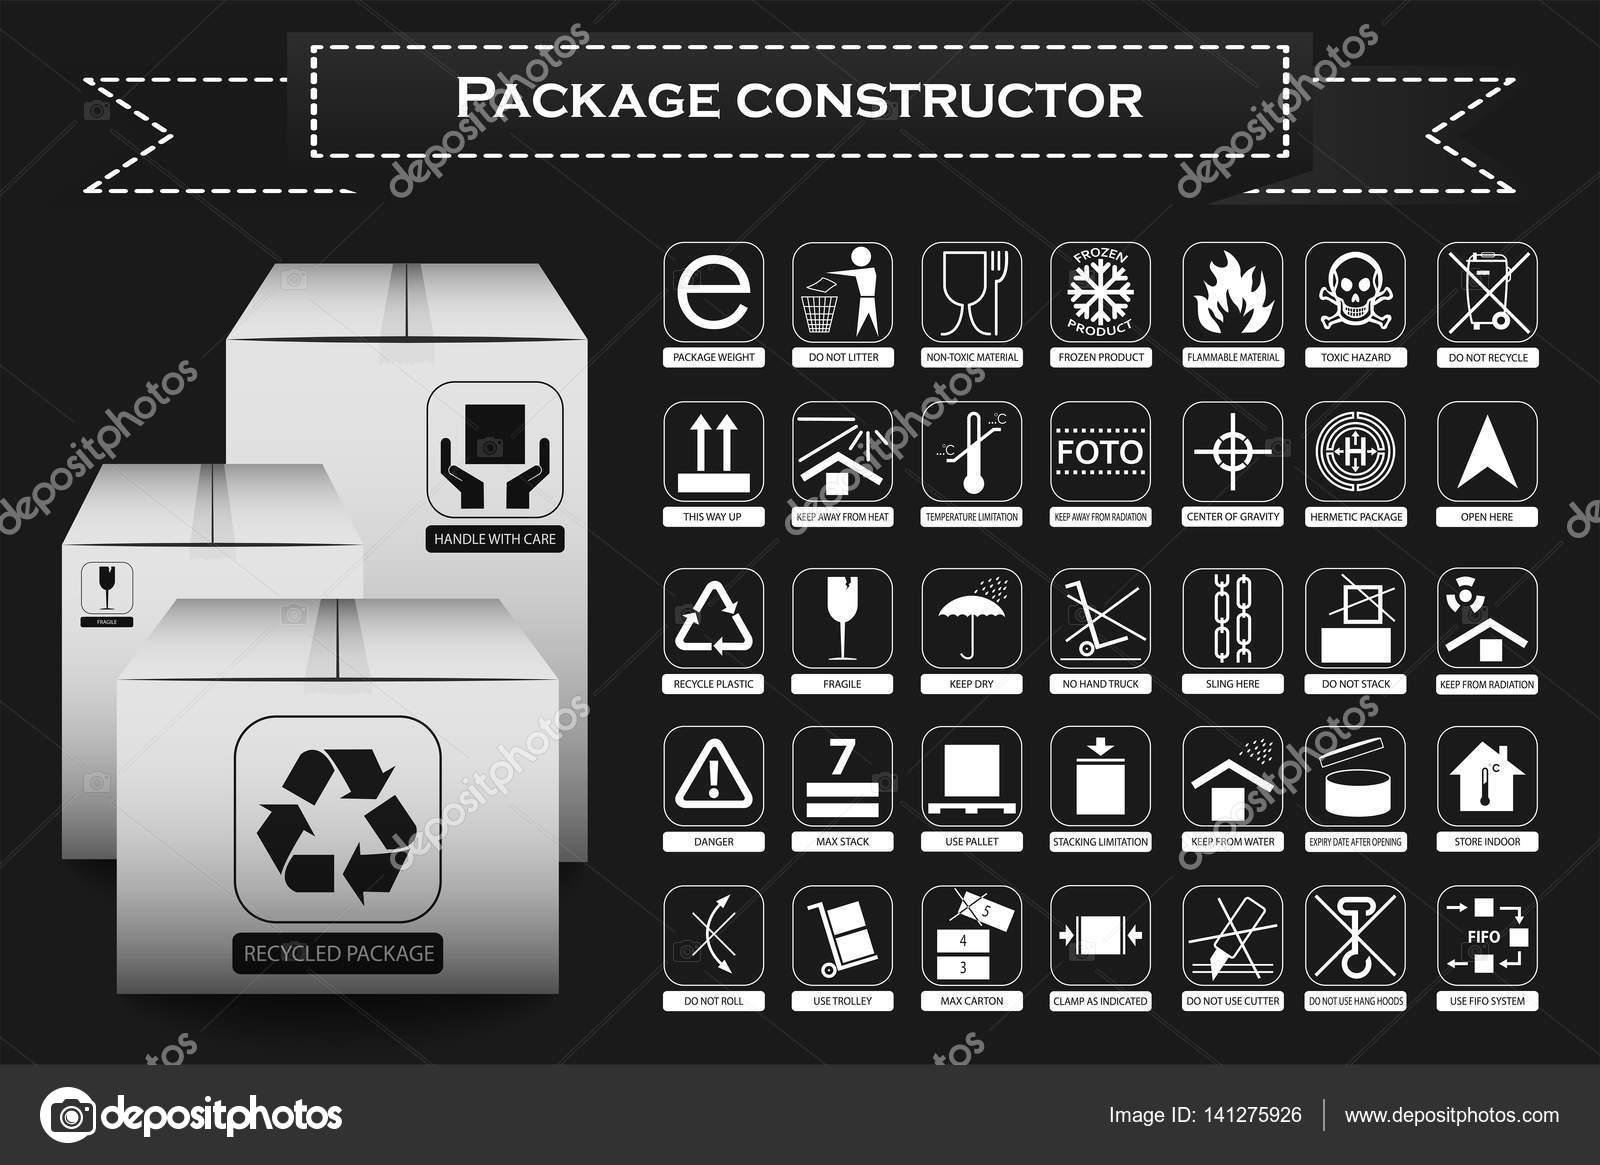 Packaging symbols icon set including waste recycling fragile packaging symbols icon set including waste recycling fragile flammable this side up handle with care keep dry and others photo by boxerx buycottarizona